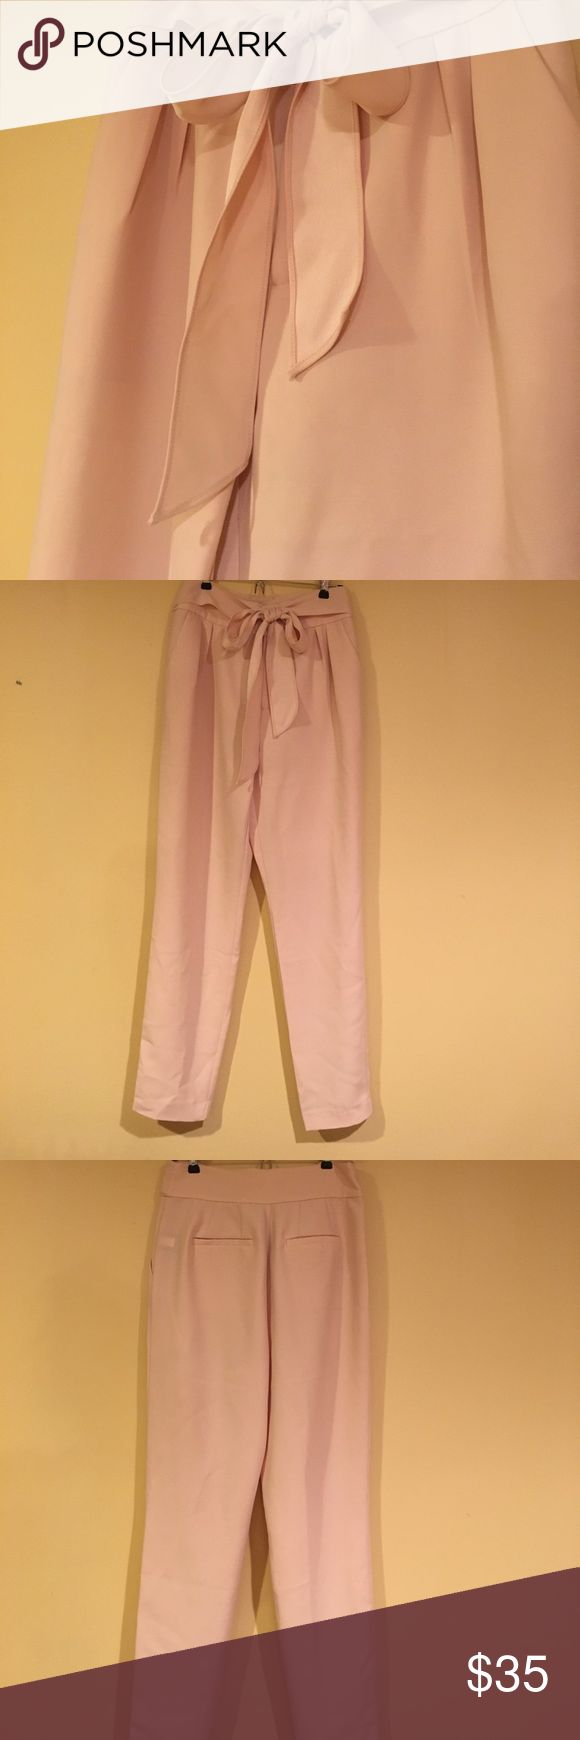 New with tags Light Pink pants Brand new from the current collection of Bebe. Fully lined, nice fabric trousers With two sided satin thigh side pockets, nice fit. I bought it and put it in my closet, realize it didn't fit me, too late to return it. Tags are still on it never worn, paid $98. Price just reduced no further discounts bebe Pants Trousers